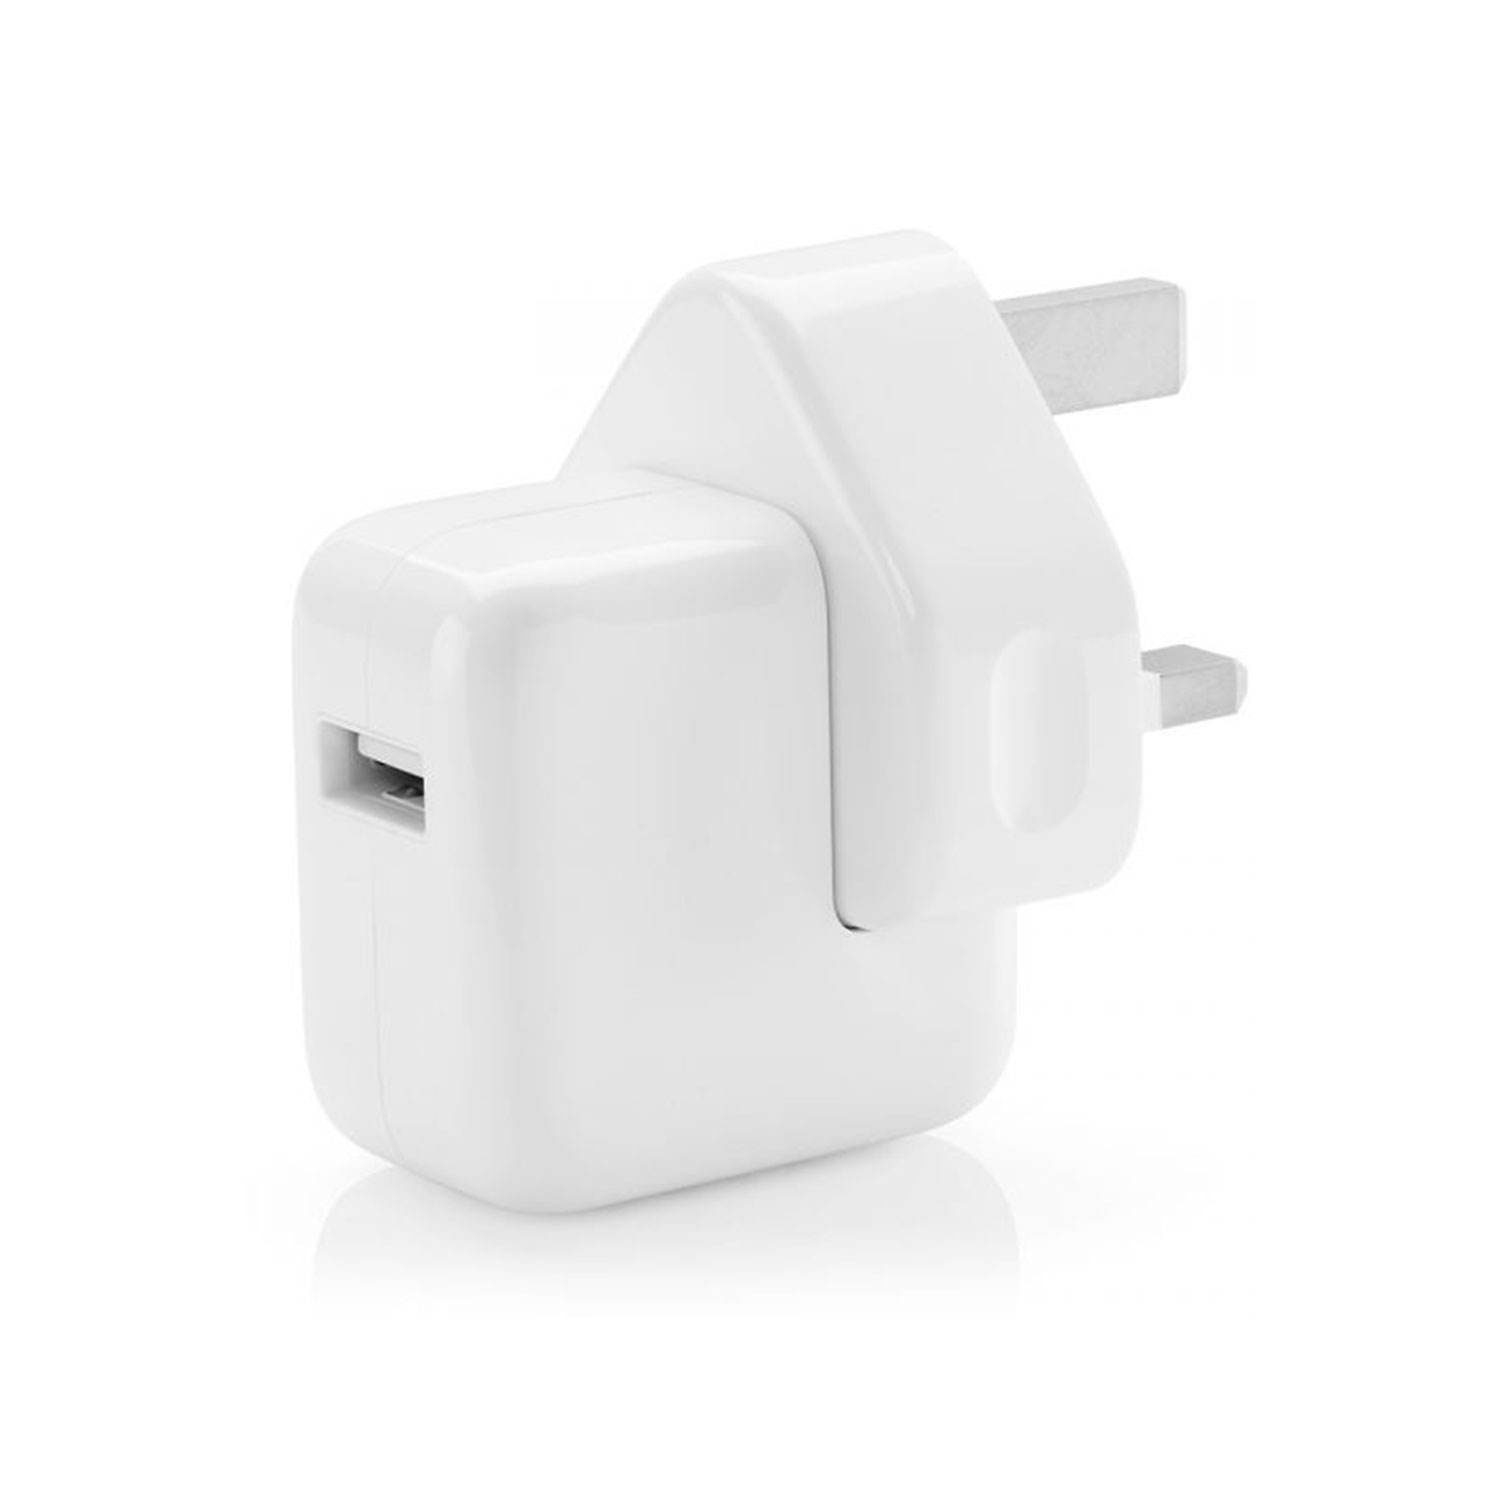 for iphone 12 watt power adapter original oem 1:i usb fast charger with quick charging plug uk pin for pad 5 6 7 8 pro x x s r